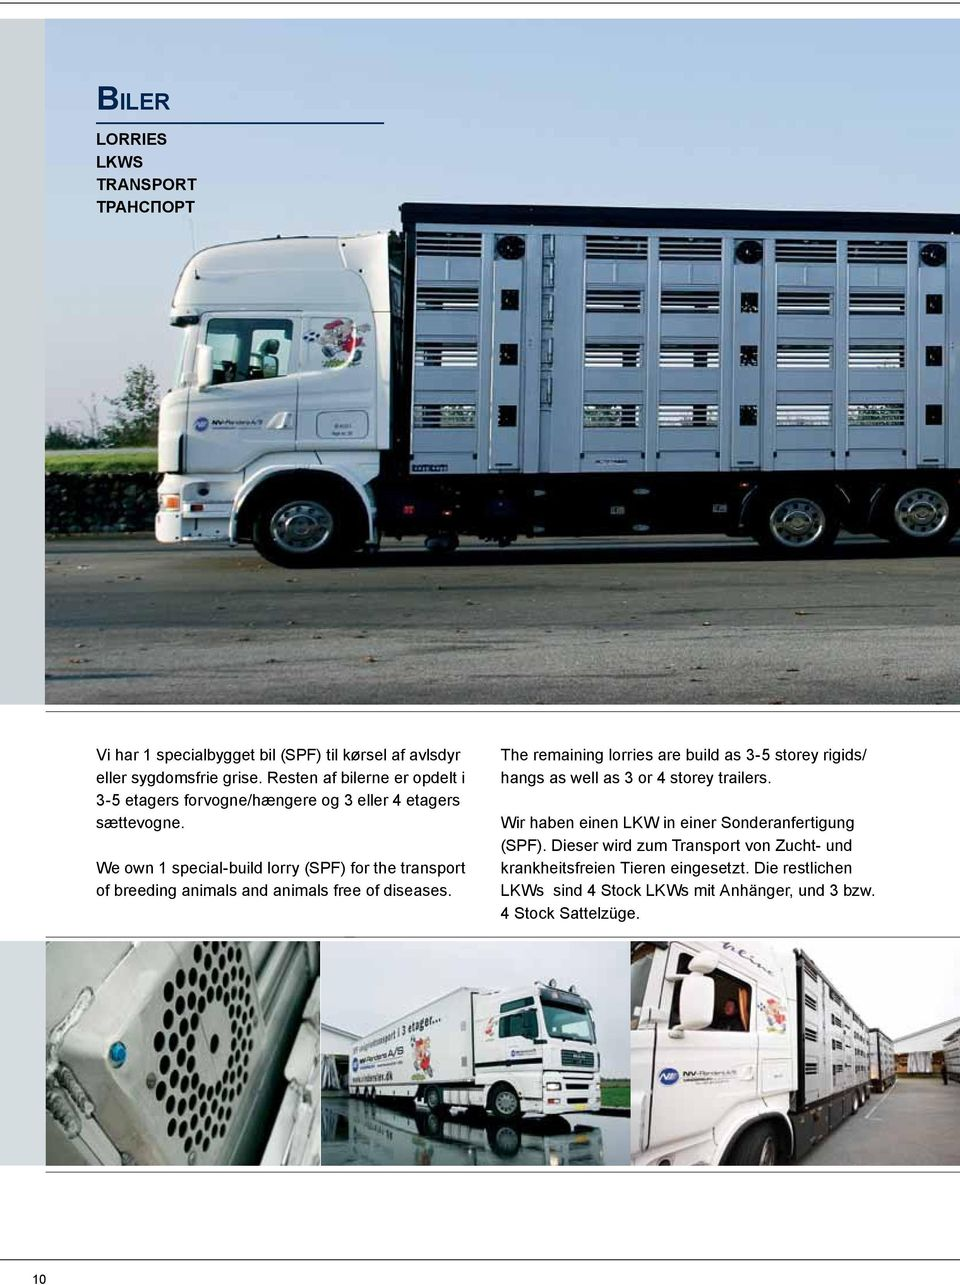 We own 1 special-build lorry (SPF) for the transport of breeding animals and animals free of diseases.